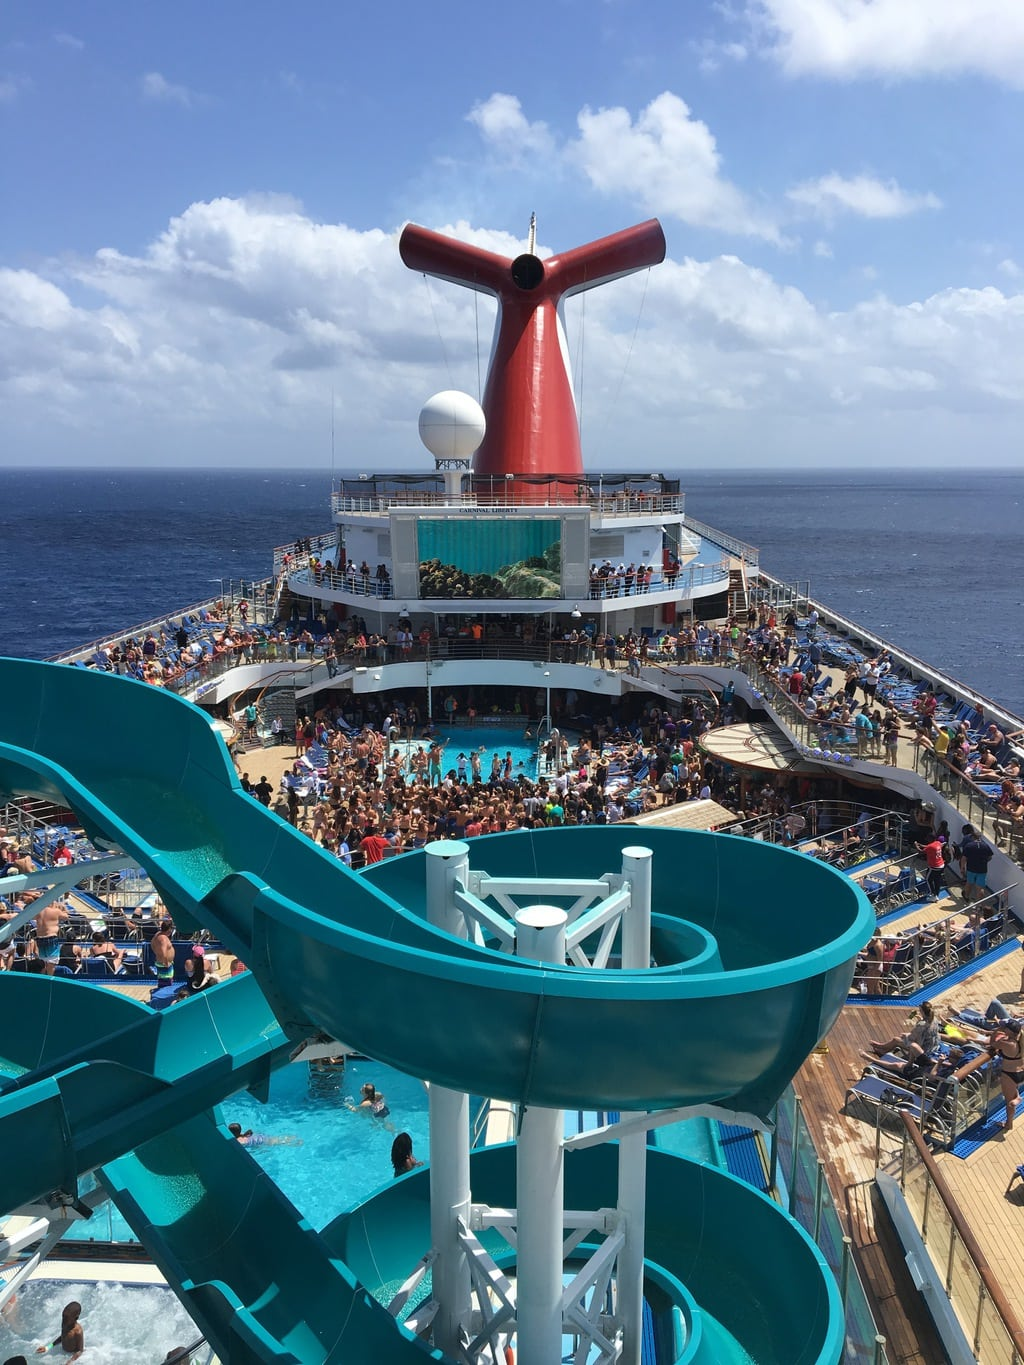 I have been talking to my sister about doing a girls getaway for a couple of years now. We finally decided to do it, and chose a 3-day cruise to the Bahamas with Carnival!